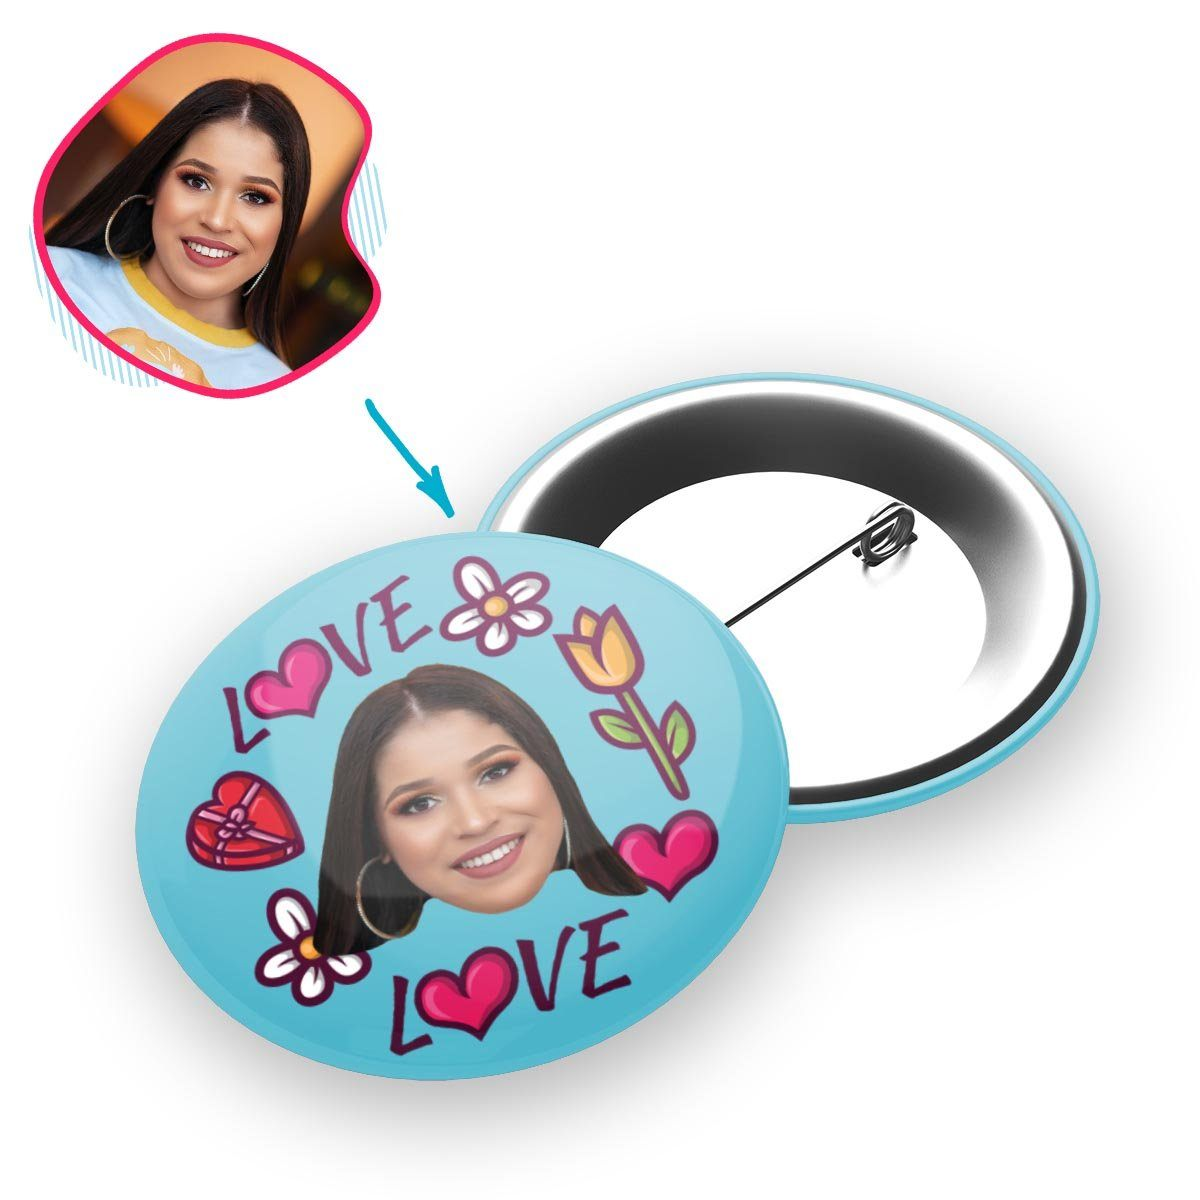 blue Hearts and Flowers pin personalized with photo of face printed on it